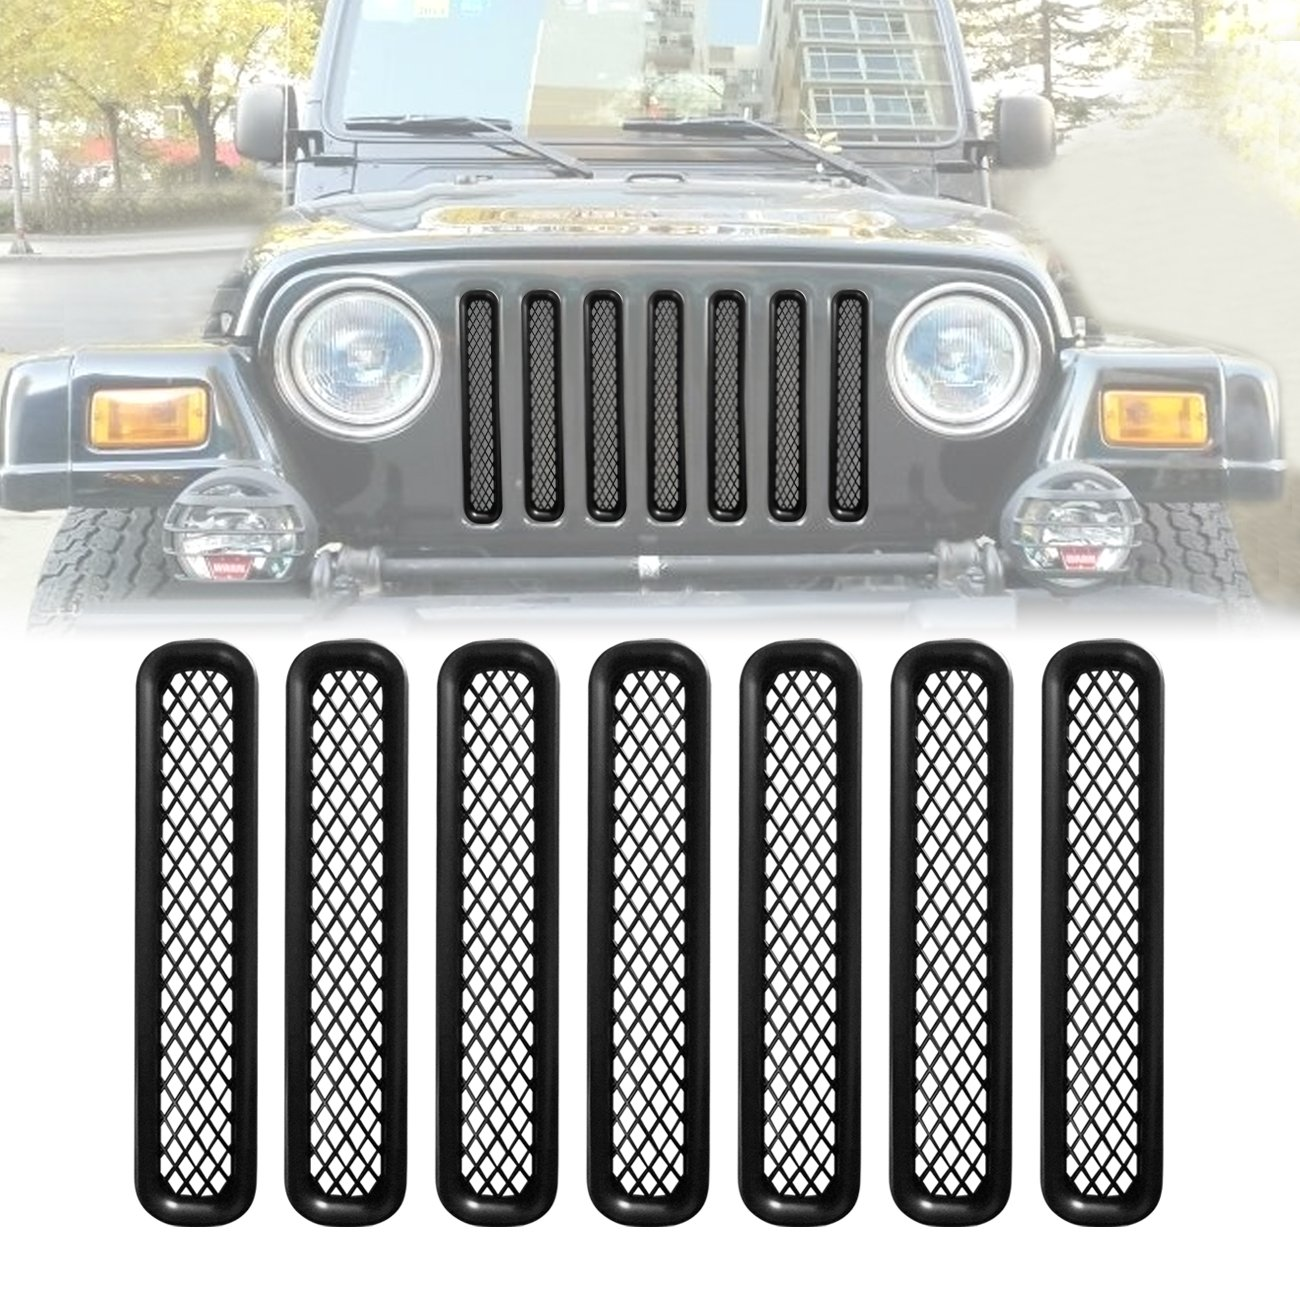 7PCS ICARS Matte Black Mesh Grill Inserts Grille Guard Square Style for 1997-2006 Jeep Wrangler TJ Unlimited Rubicon Sahara